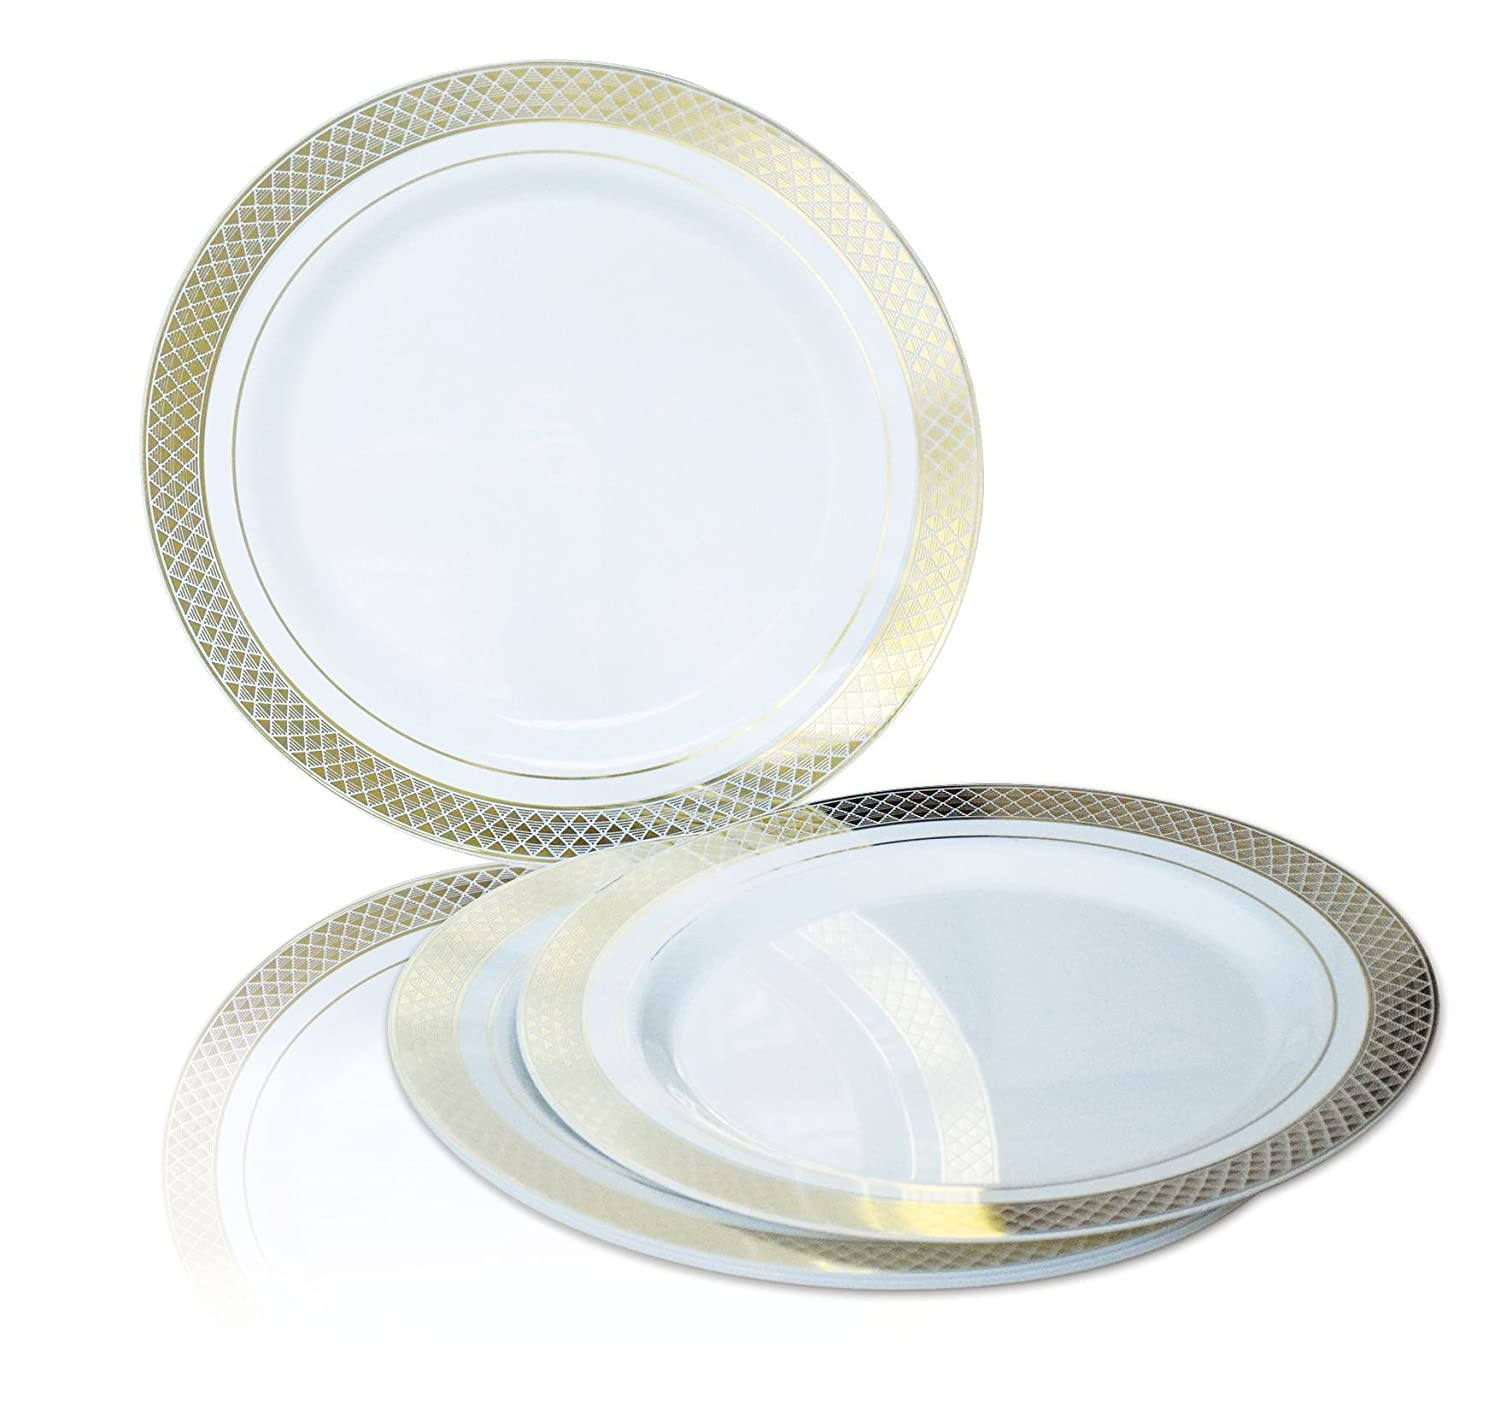 Amazon.com OCCASIONS 120 PACK Heavyweight Disposable Wedding Party Plastic Plates (7.5u0027u0027 Salad/Dessert Plate Celebration White/Gold) Kitchen u0026 Dining  sc 1 st  Amazon.com & Amazon.com: OCCASIONS 120 PACK Heavyweight Disposable Wedding Party ...